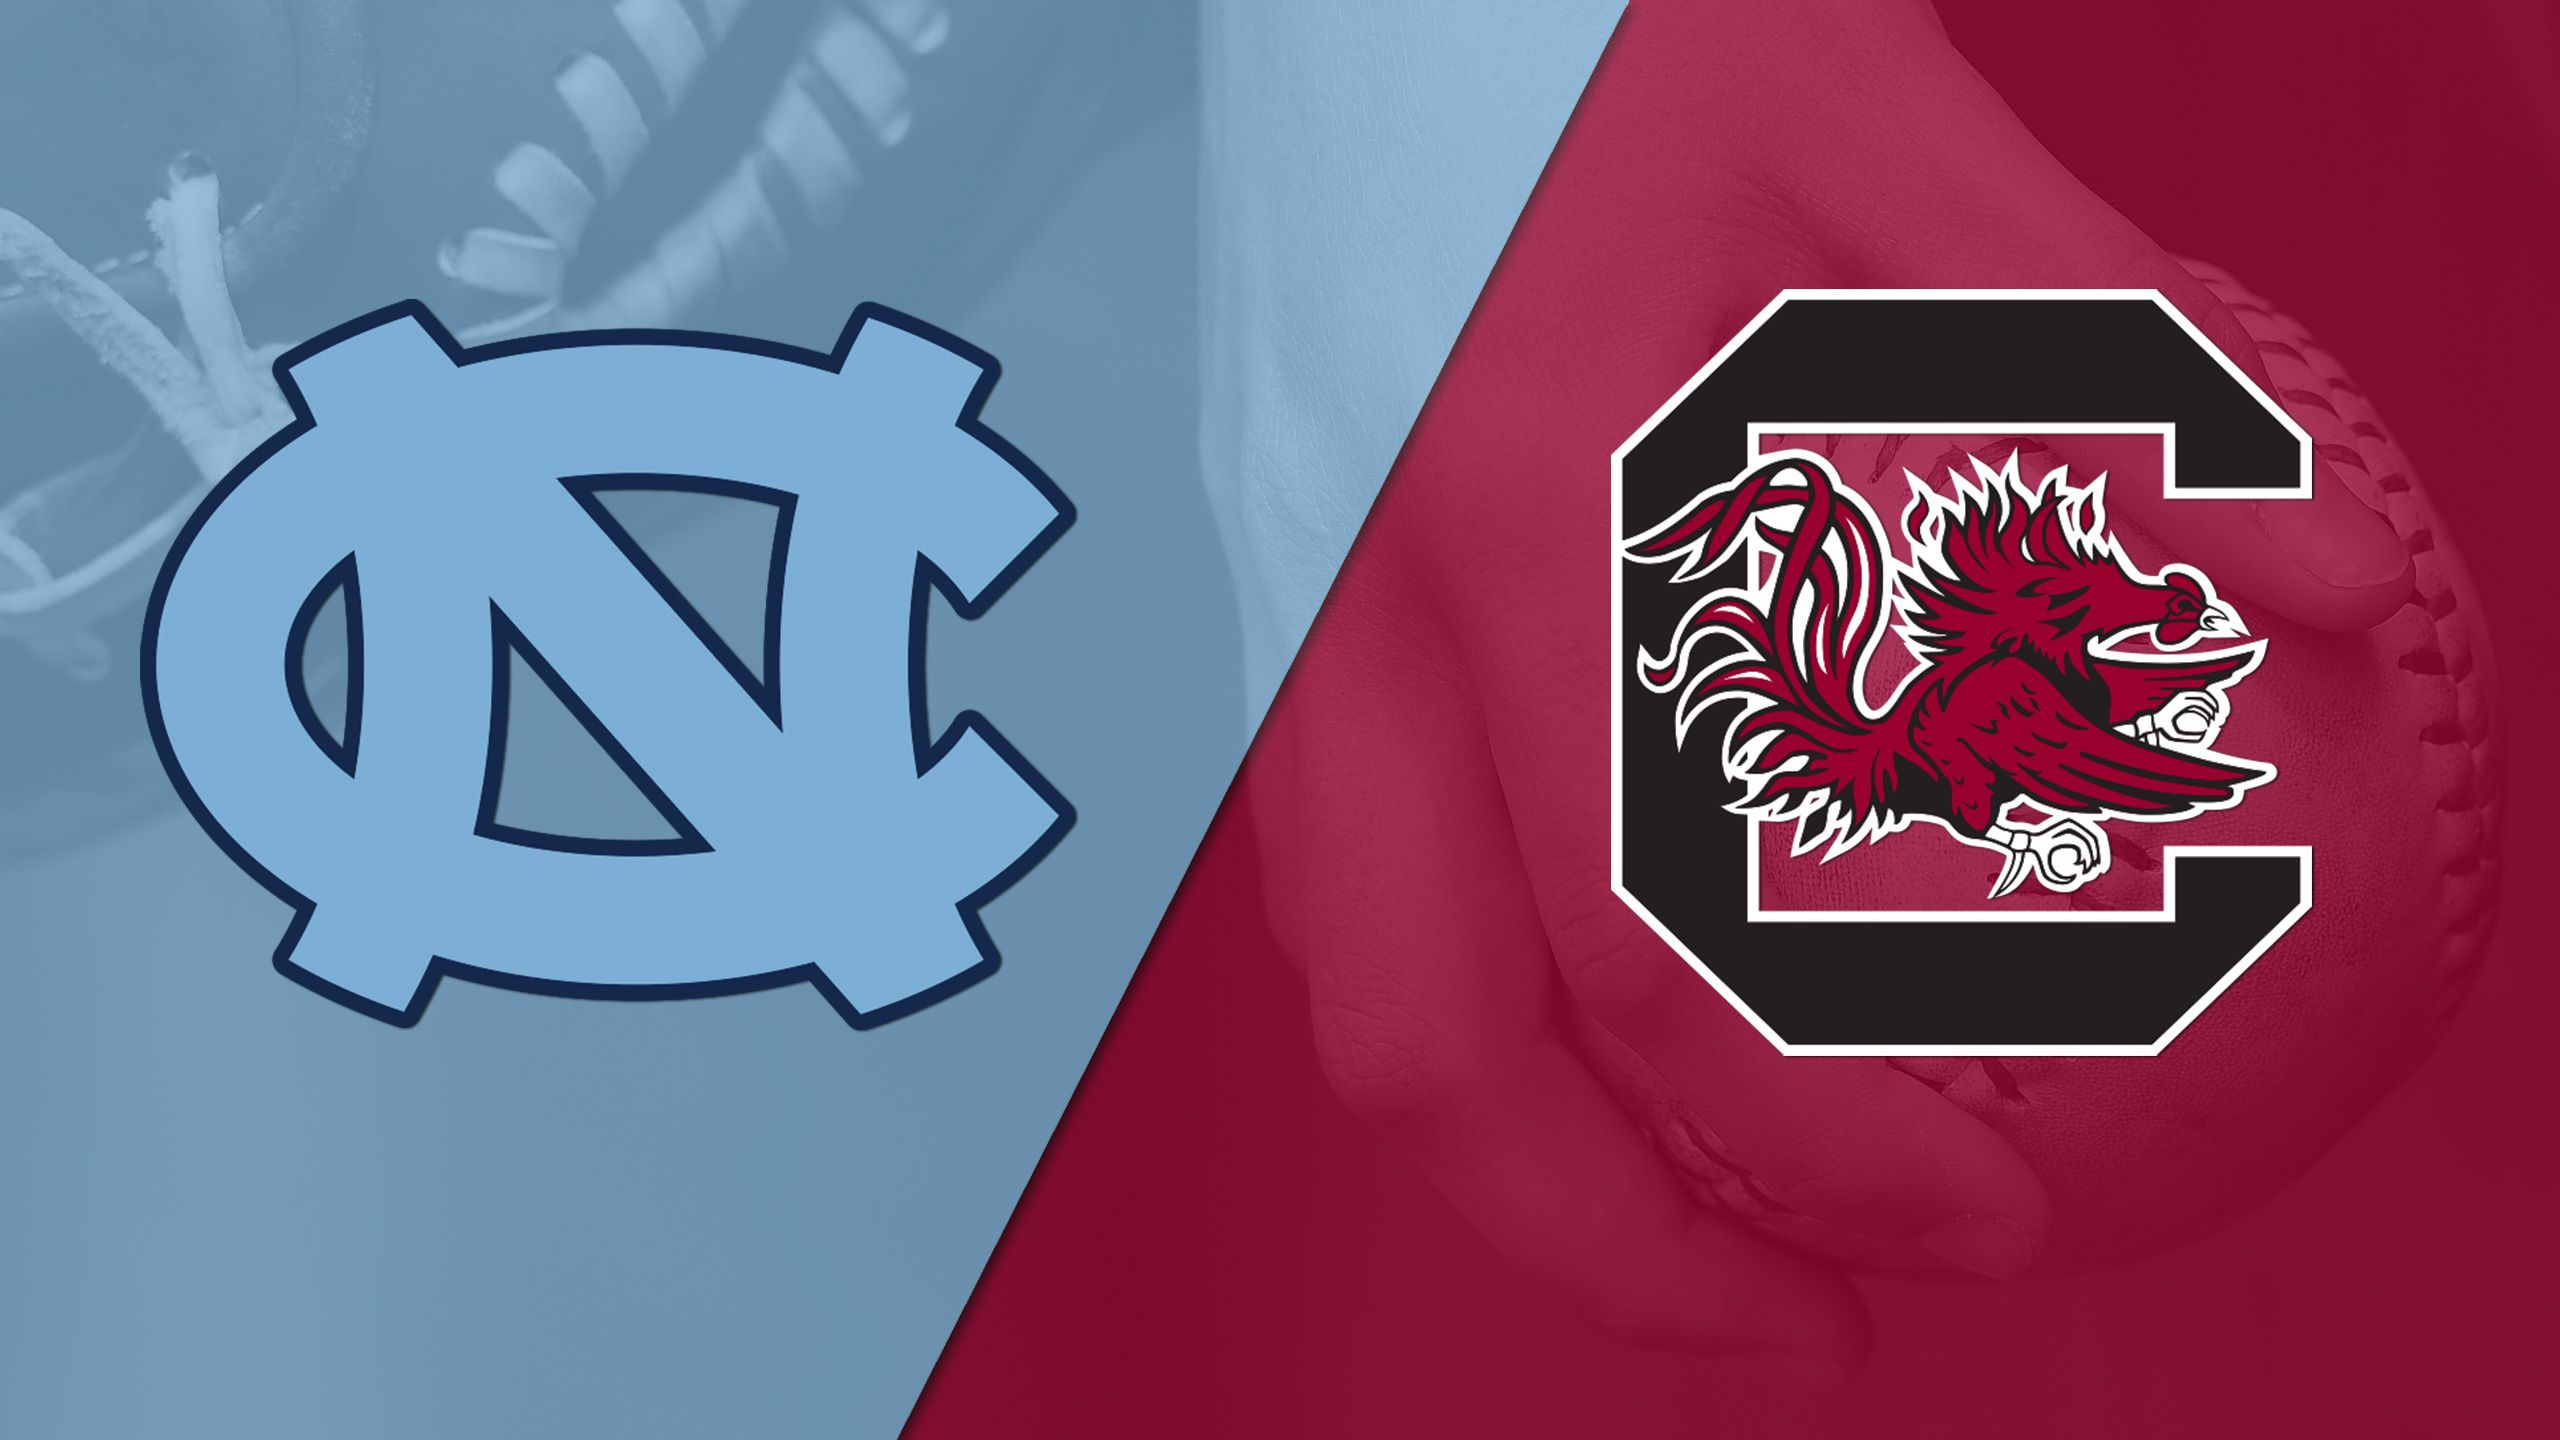 North Carolina vs. South Carolina (Softball)